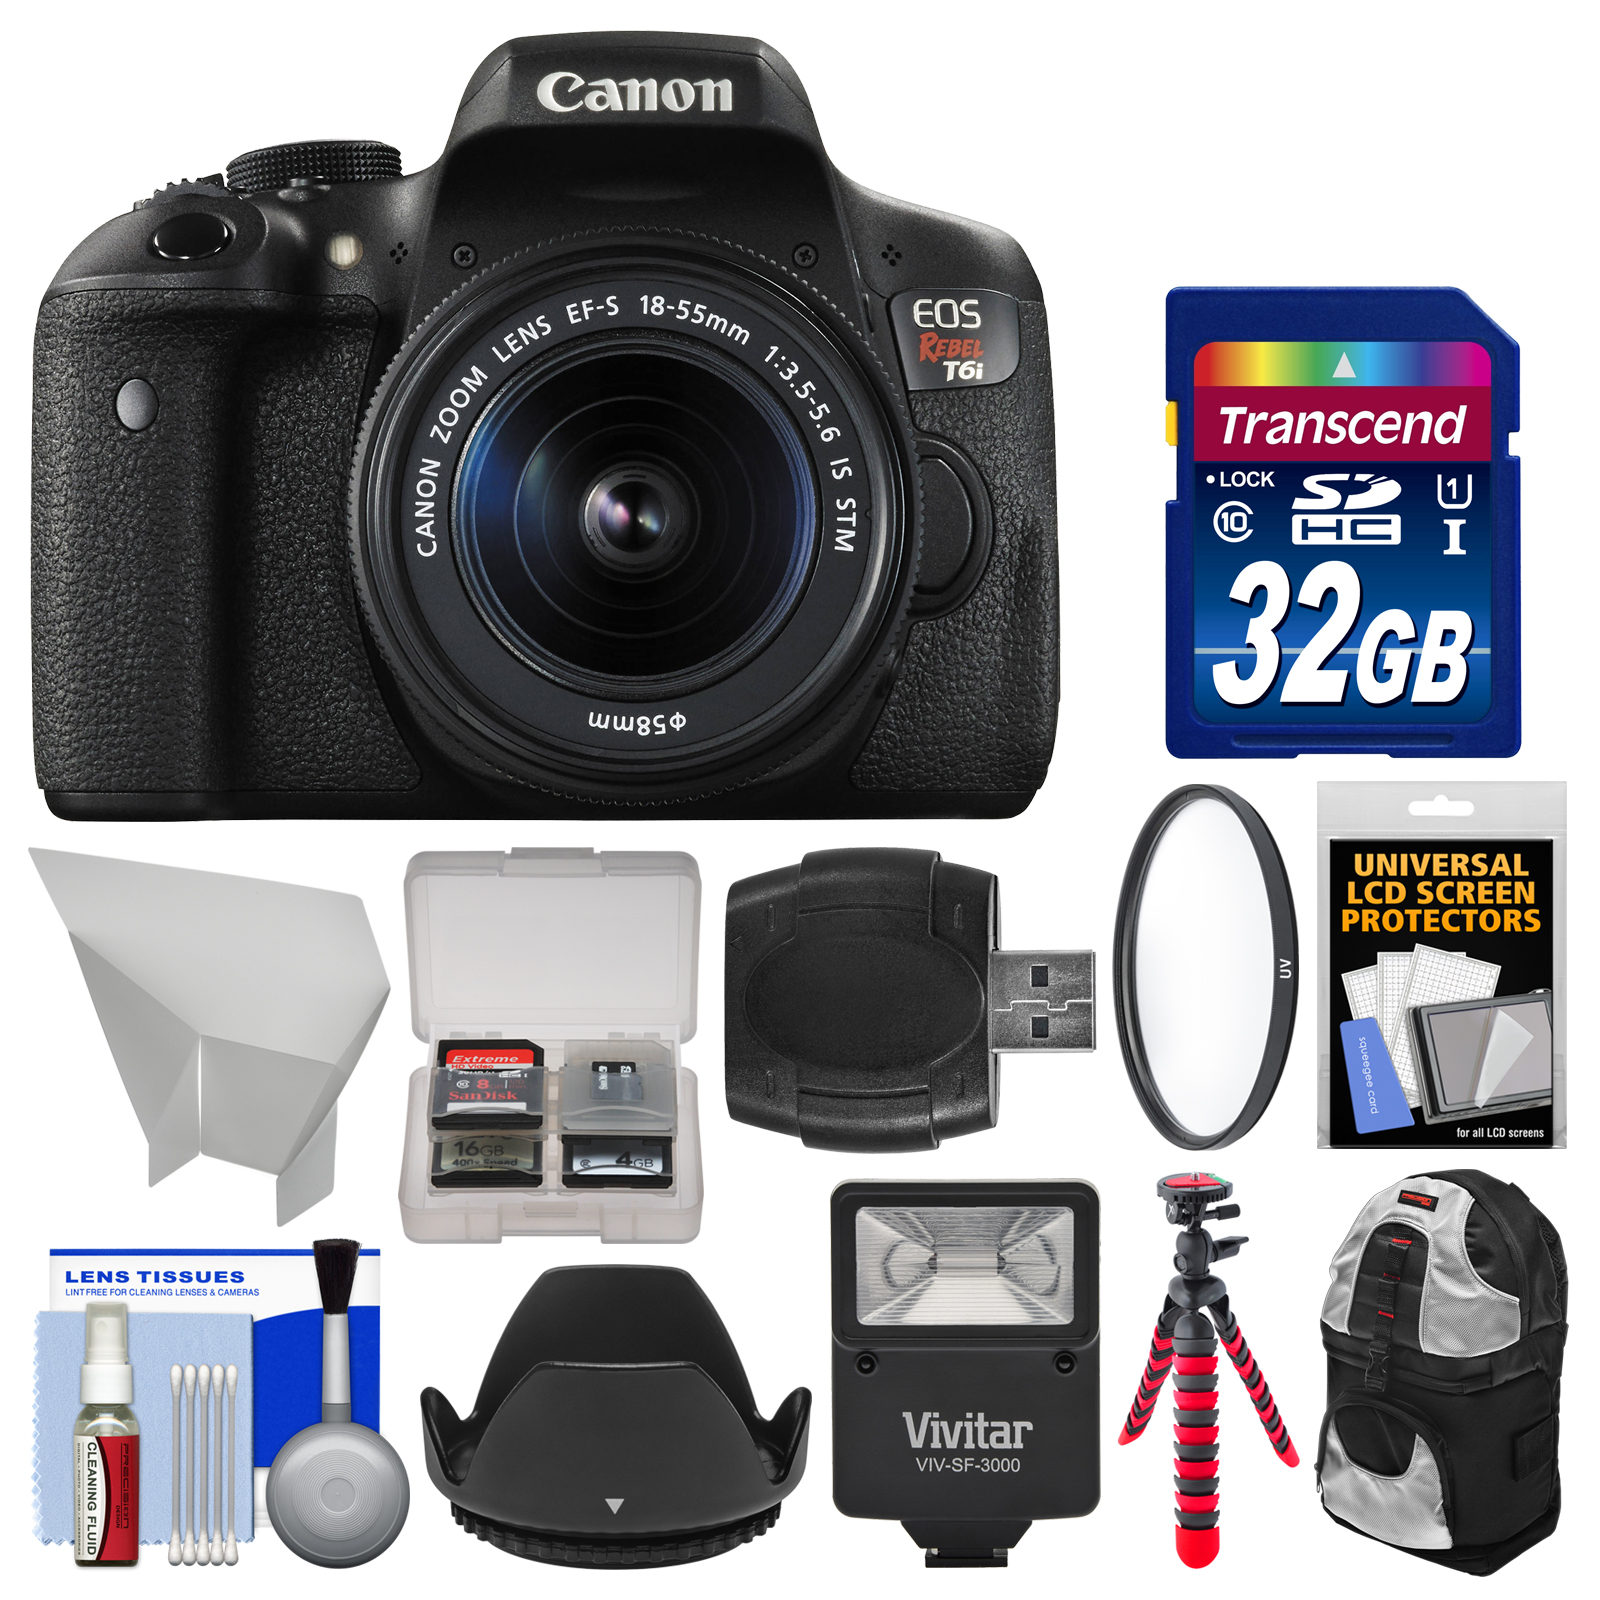 Canon EOS Rebel T6i Wi-Fi Digital SLR Camera & EF-S 18-55mm IS STM Lens with 32GB Card + Case + Flash + Tripod + Filter + Hood + Kit